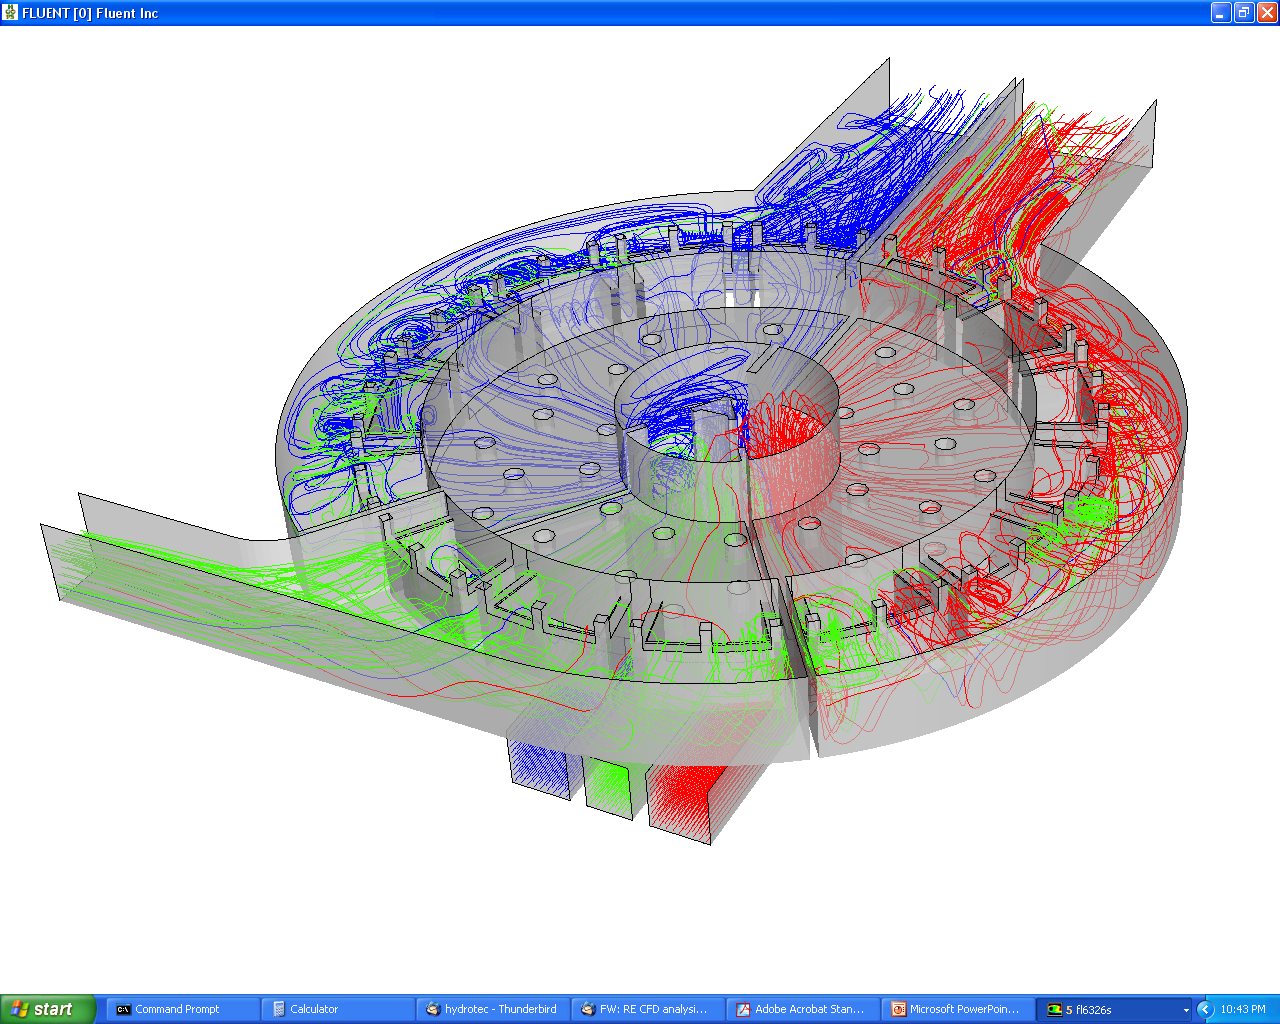 fluid dynamics and grit chamber Frontiers of green building, materials and civil engineering iii: optimization simulation on blade number of grit chambers with rotational flow.